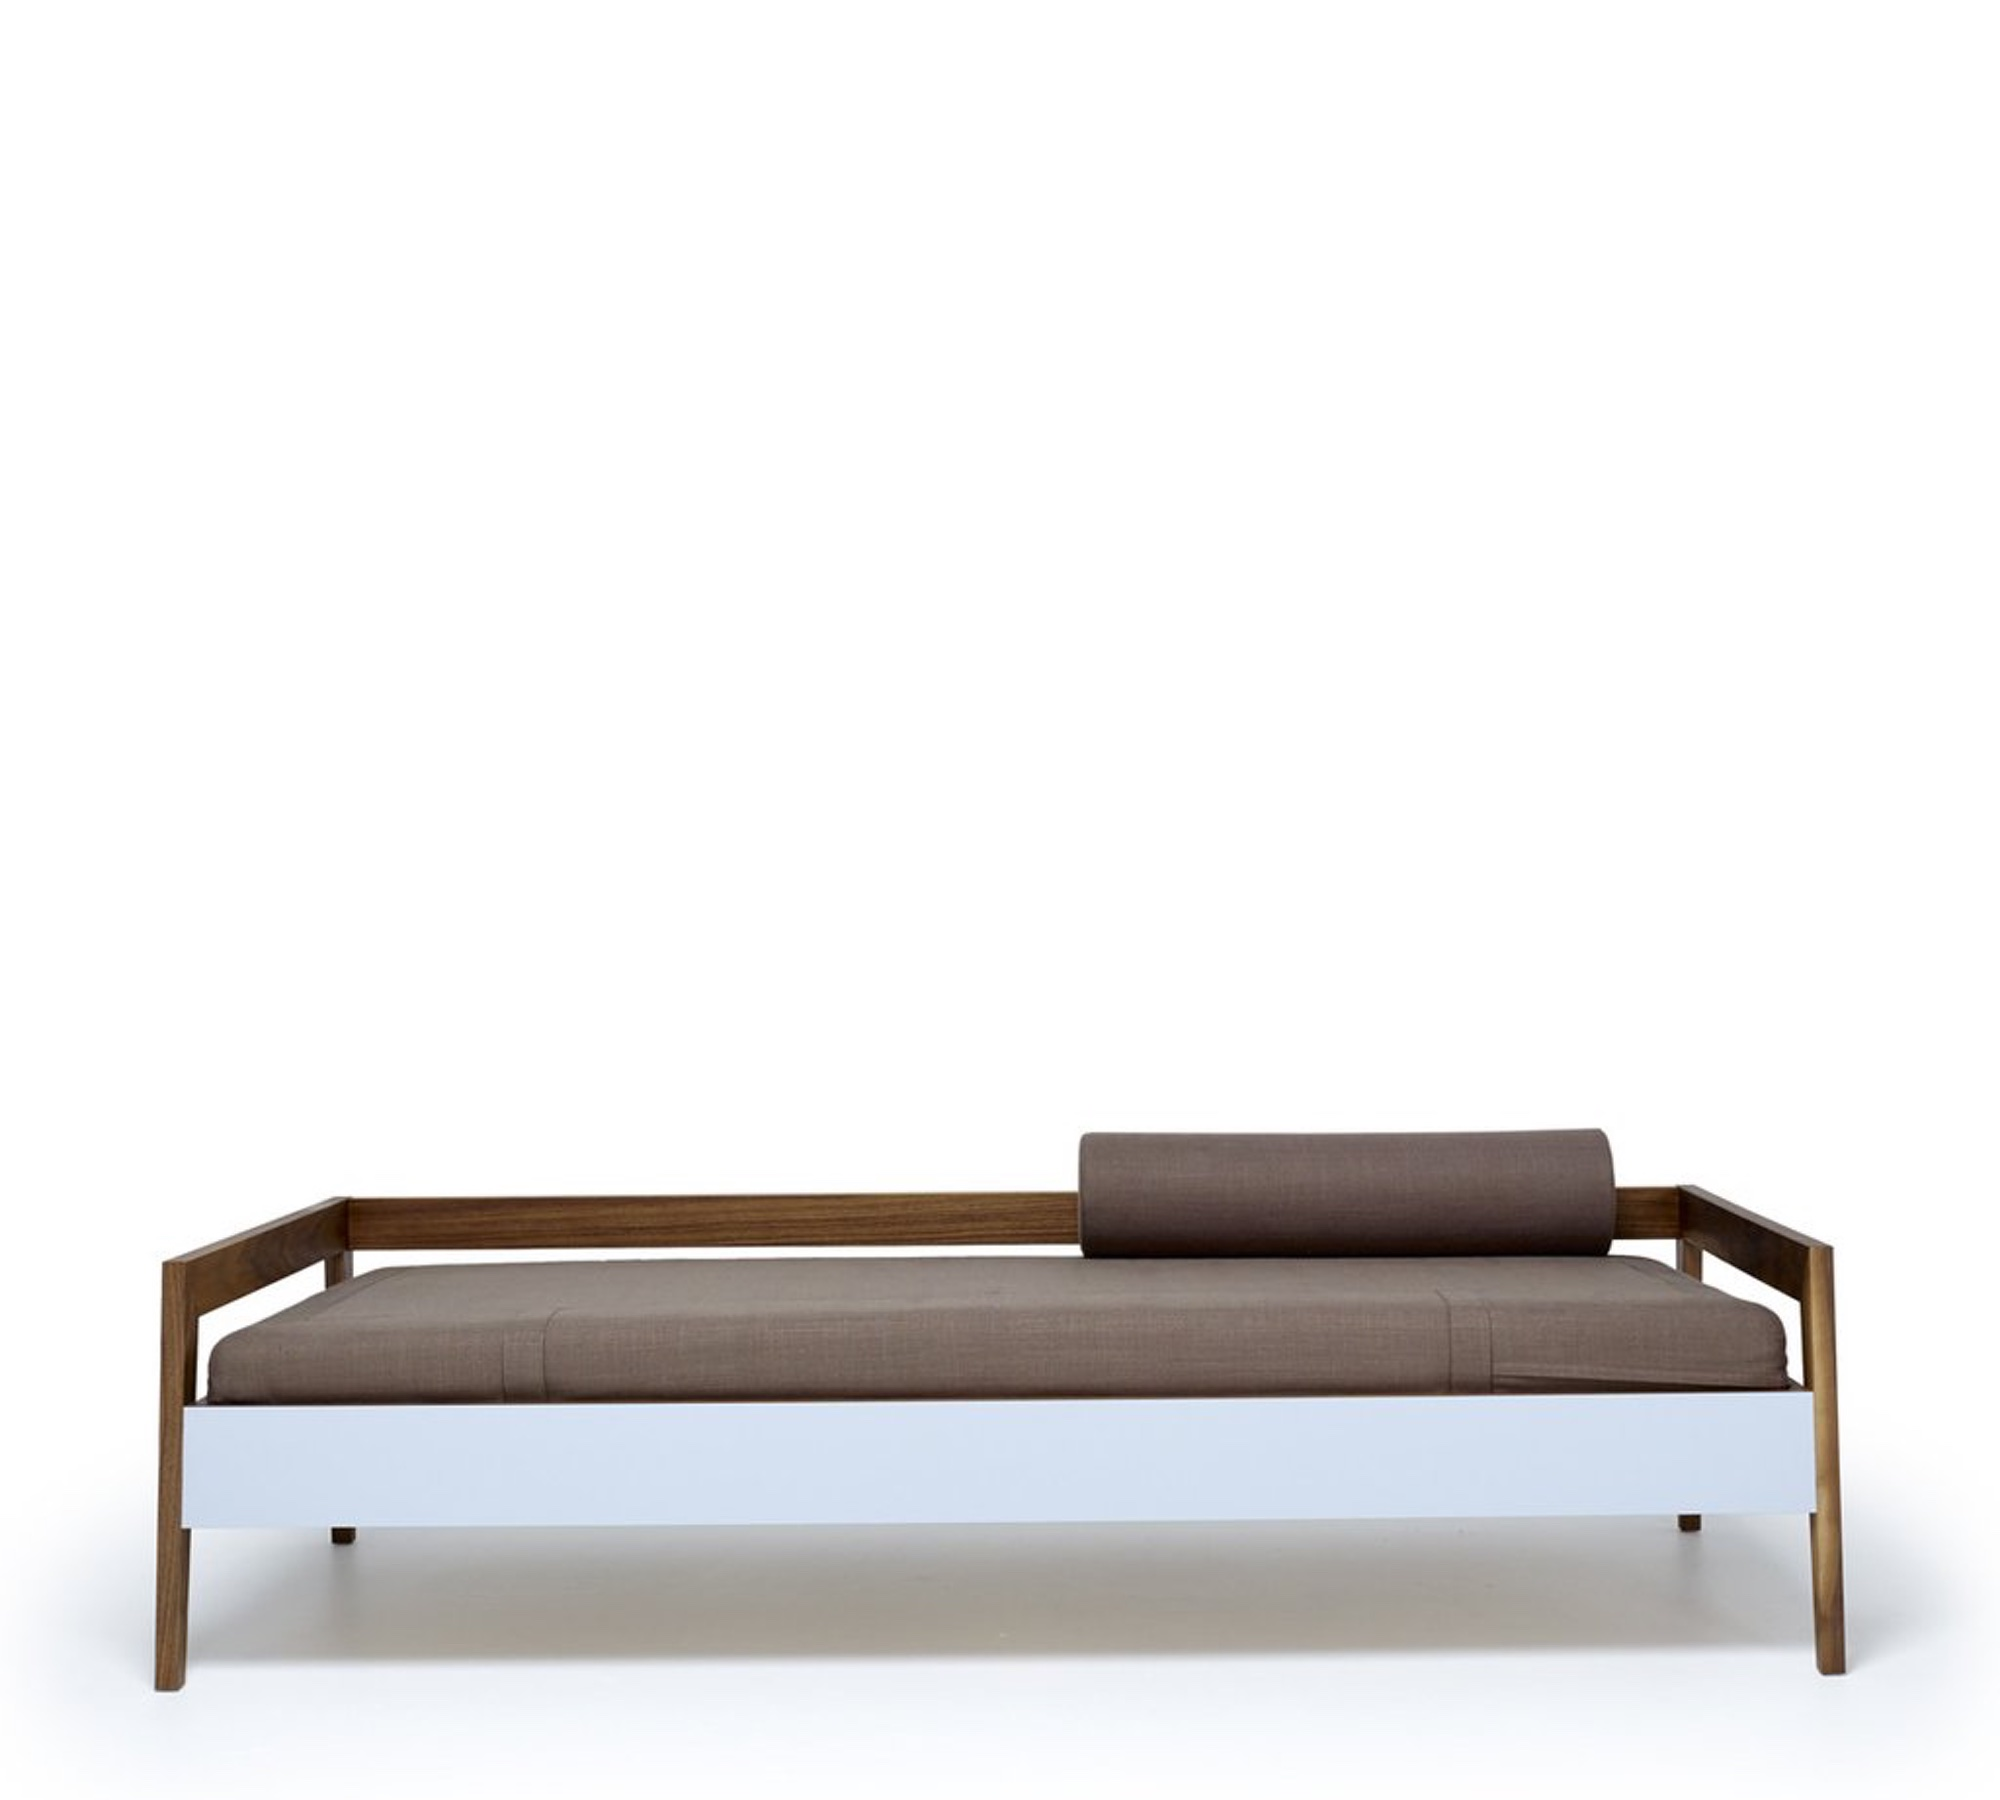 Daybed Holz Mintdesign Daybed M1908 Tagesbett Aus Massivholz